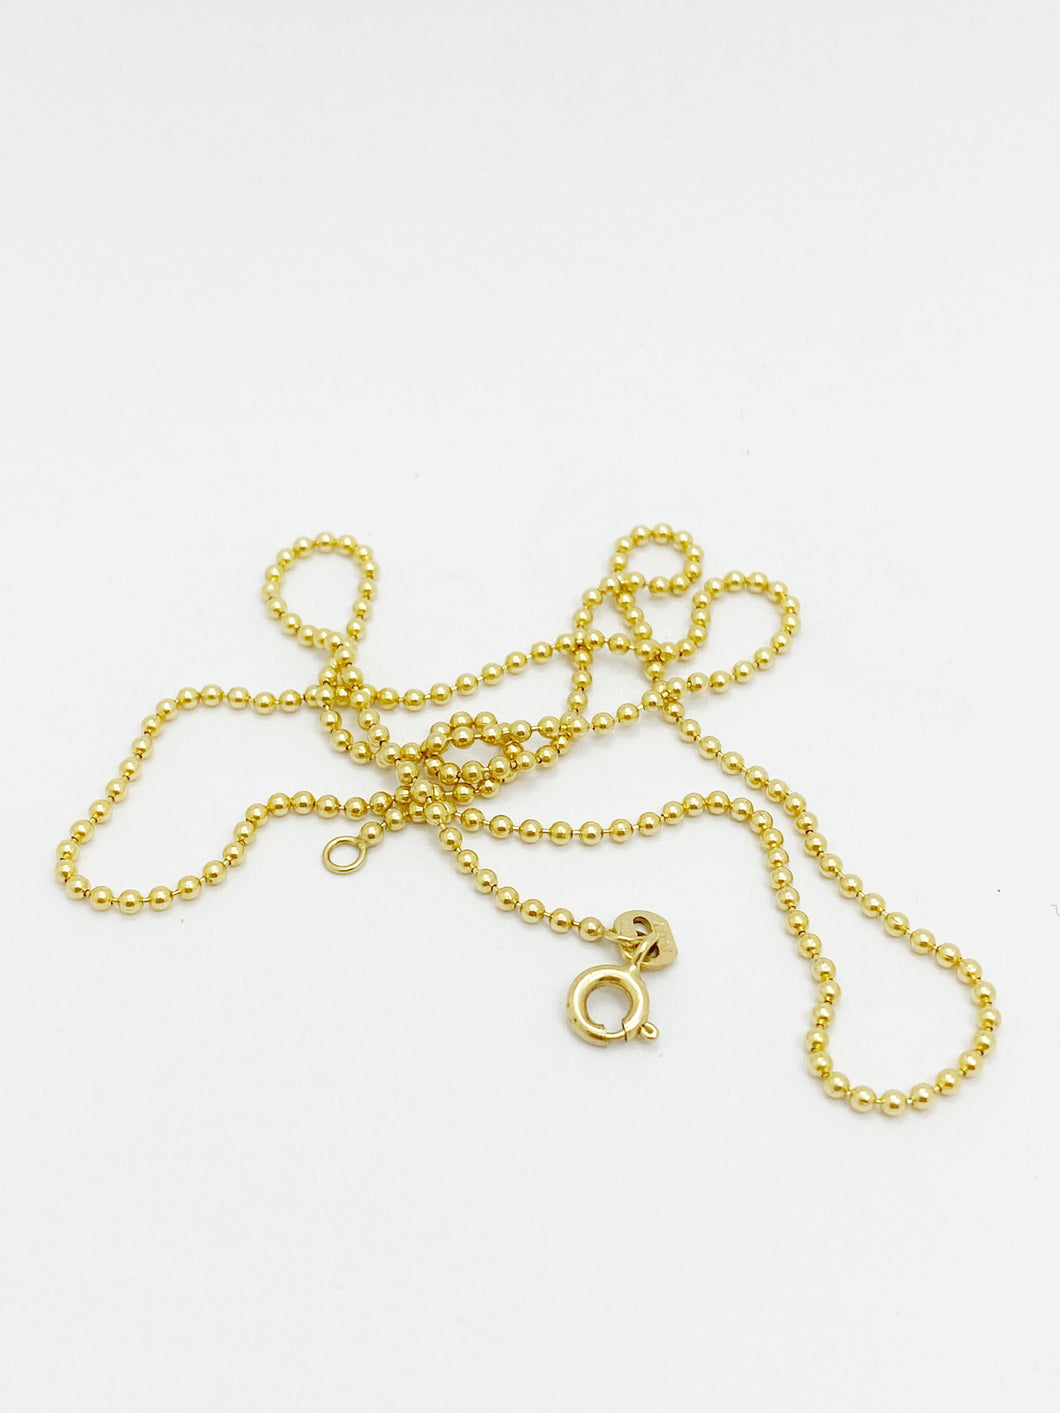 9ct Yellow Gold Bobble Chain, 40cm, 45cm or 50cm Long